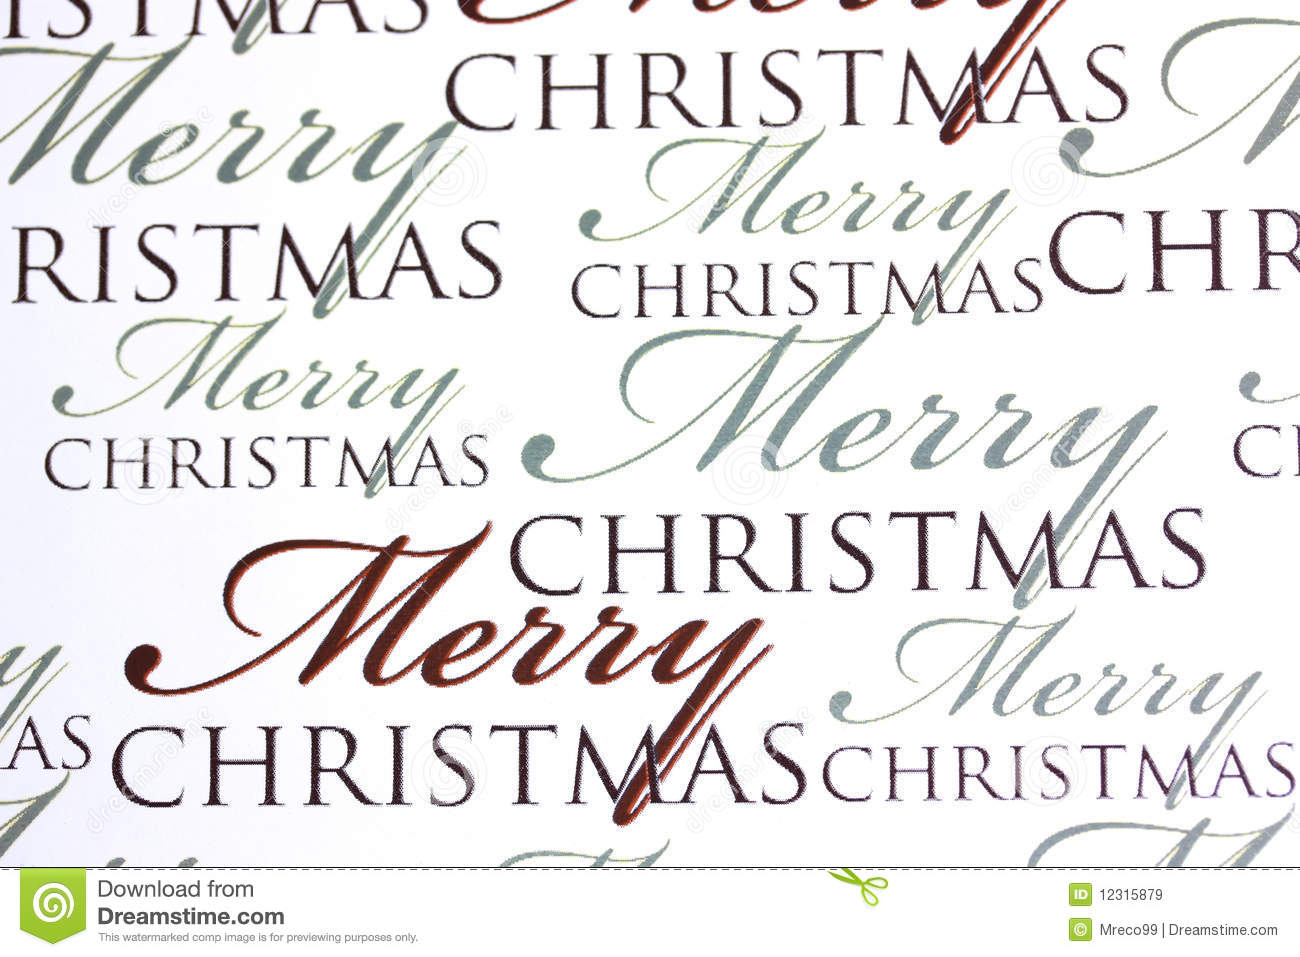 Merry Christmas Words On Paper Background Stock Image - Image of ...